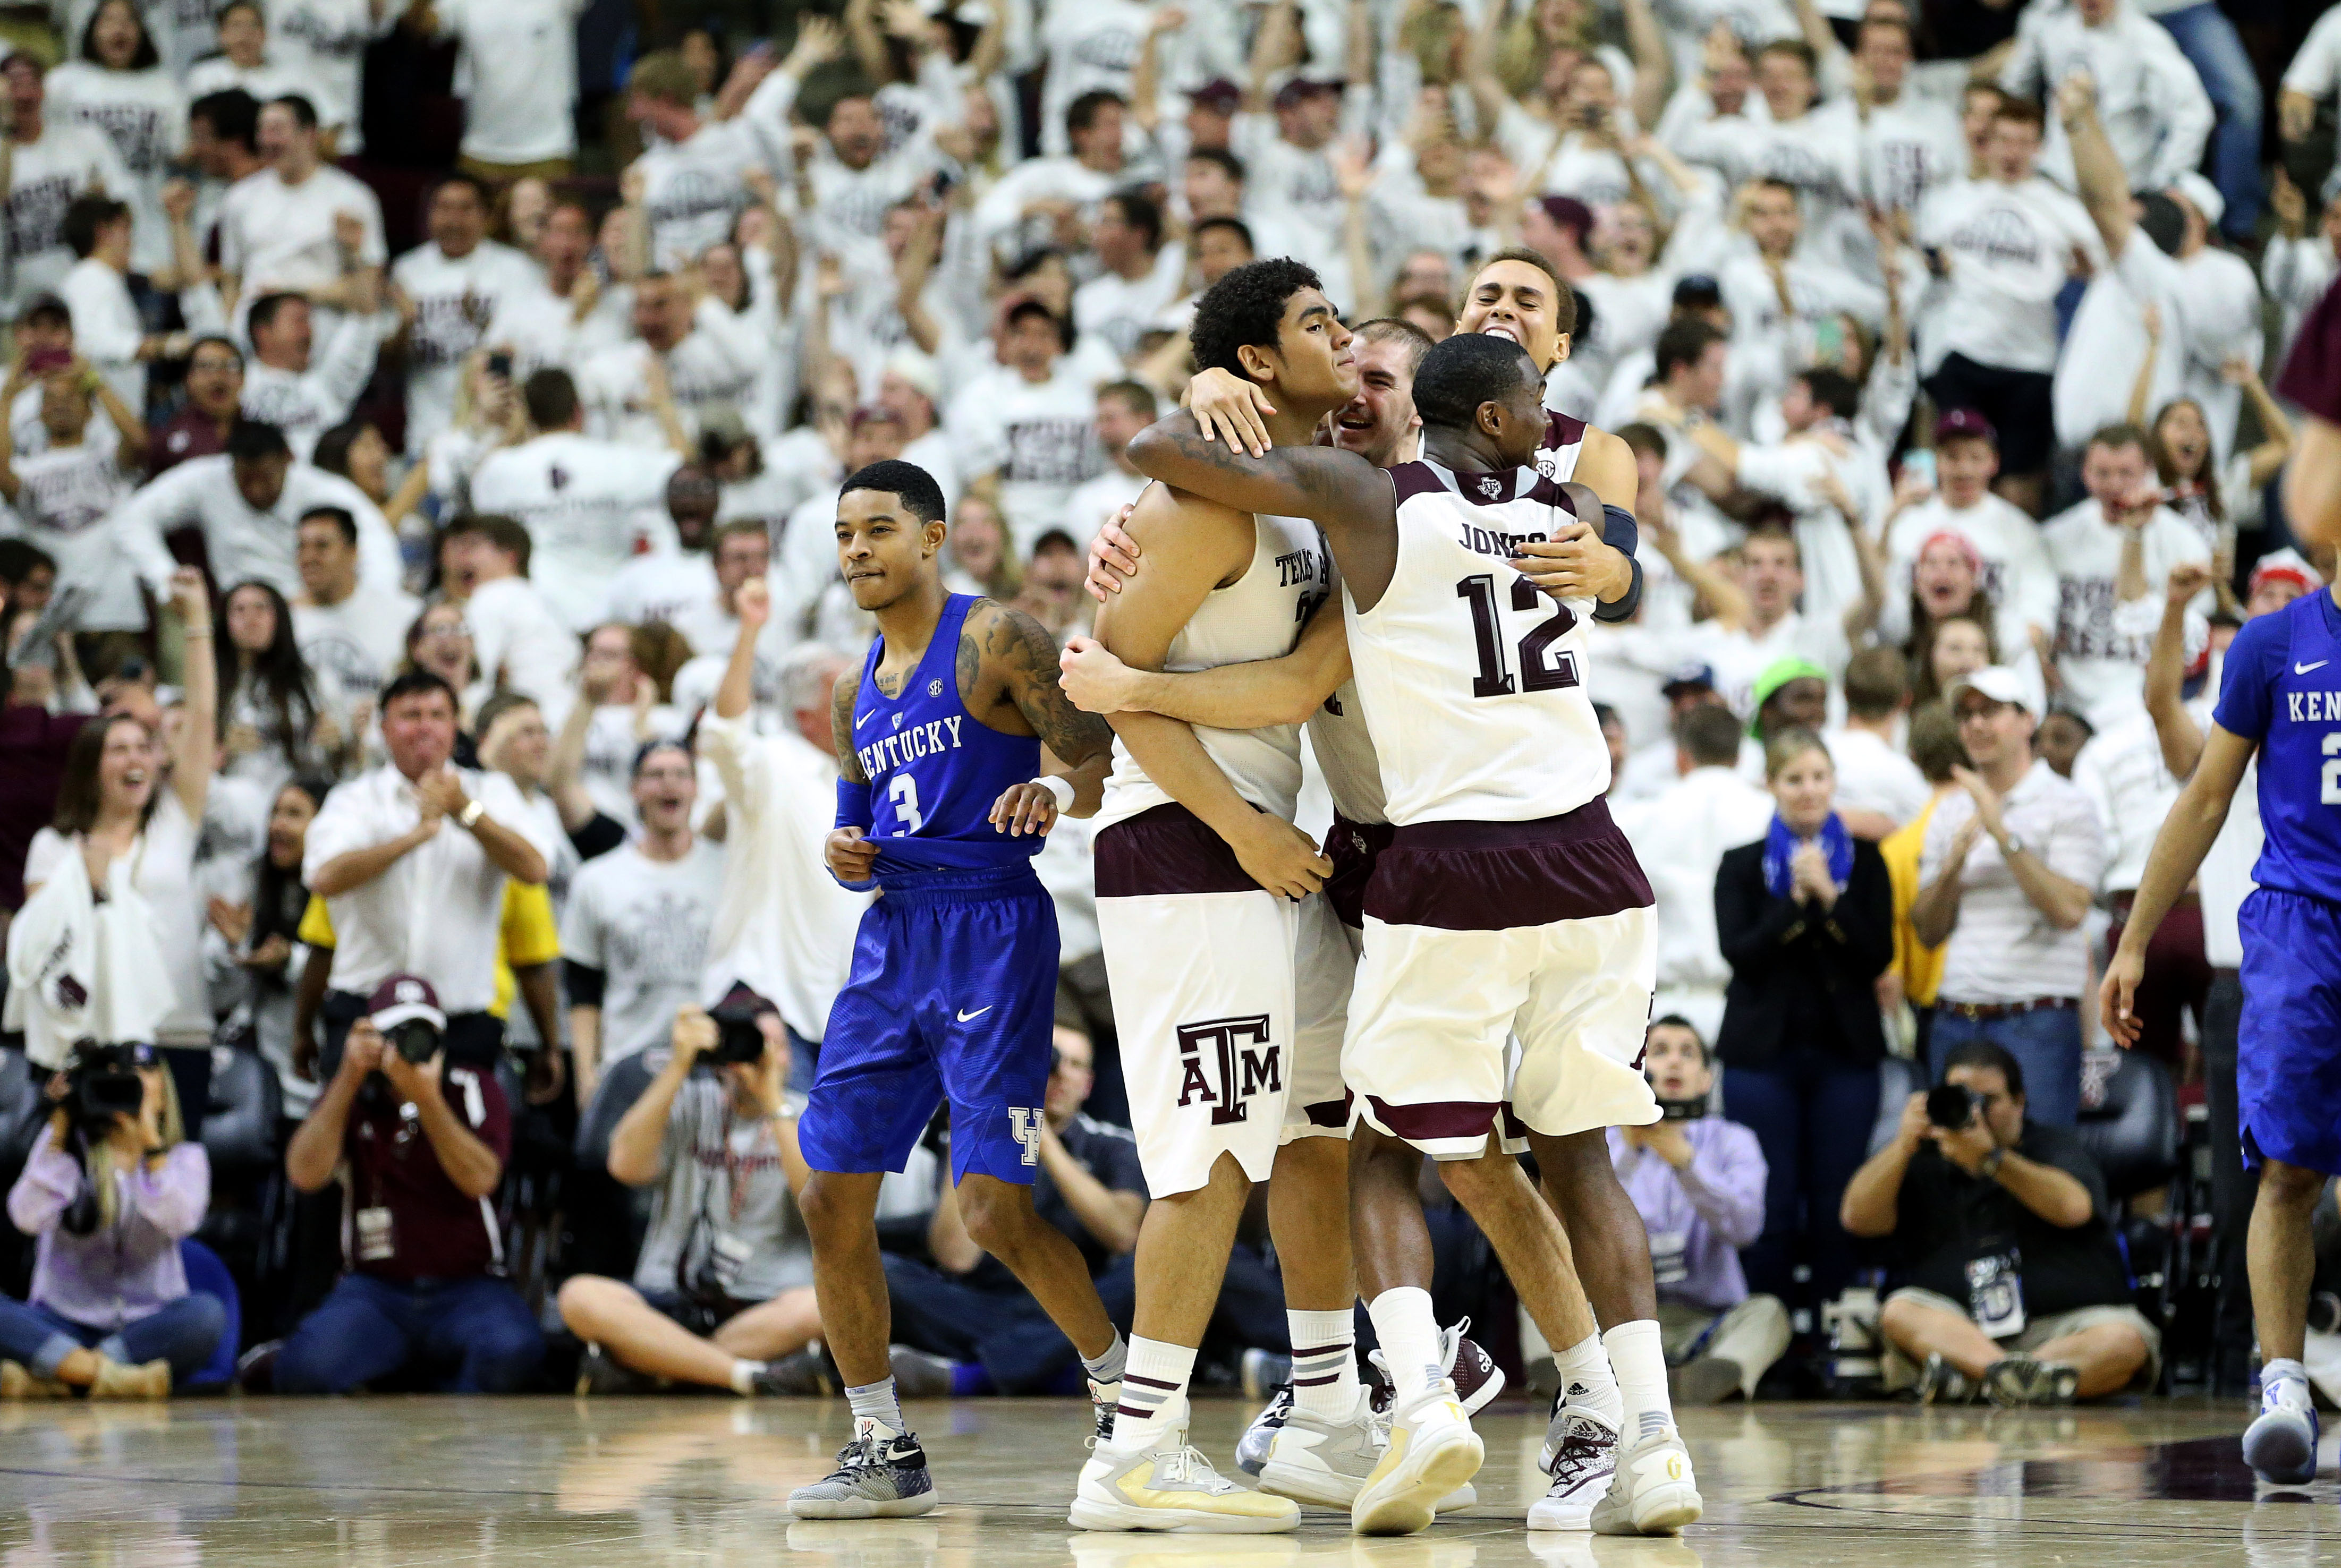 Texas A&M's Tyler Davis (23) celebrates his game winning shot with teammates during overtime of an NCAA college basketball game against Kentucky, Saturday, Feb. 20, 2016, in College Station, Texas. Texas A&M won 79-77. (AP Photo/Sam Craft)